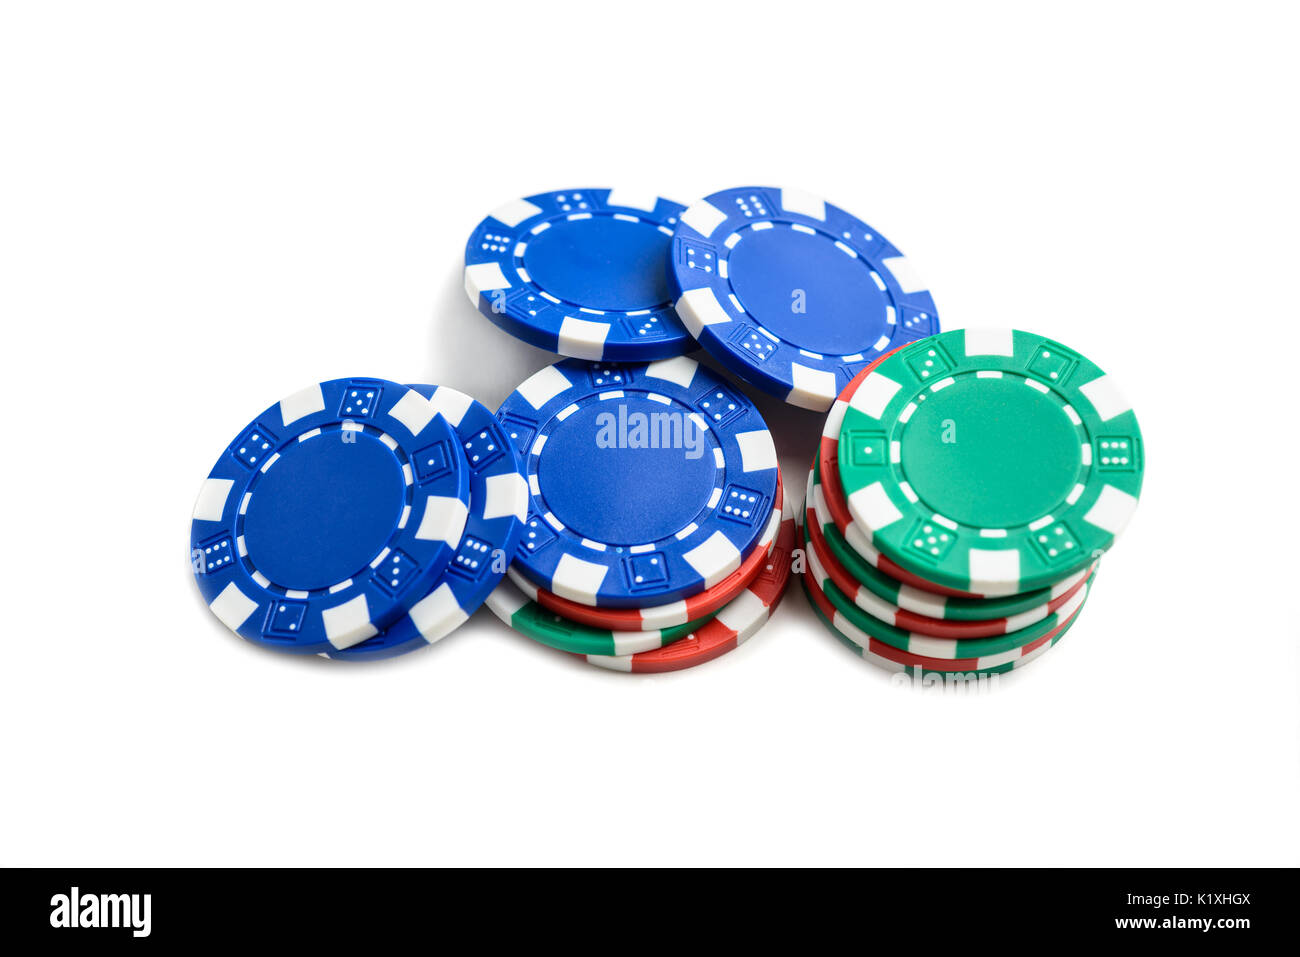 Casino poker chips isolated on white background - Stock Image